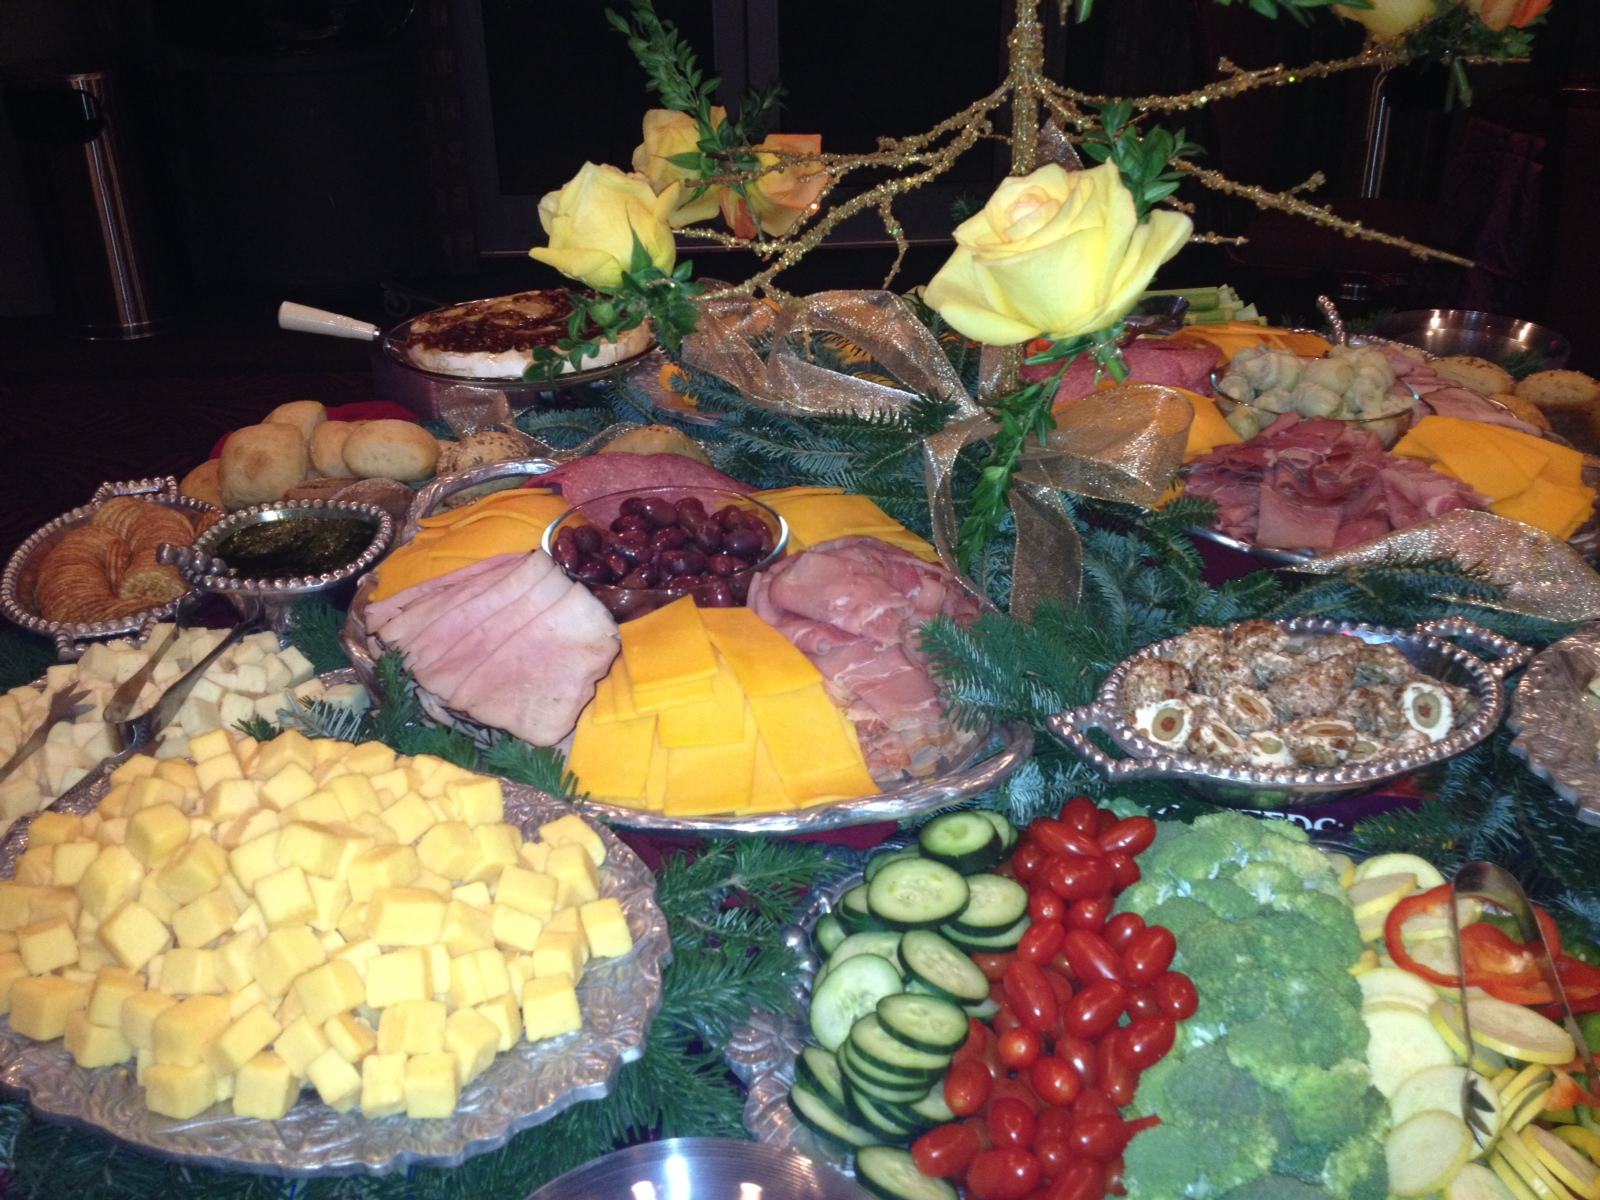 Neil's Catering - Assortment of Food